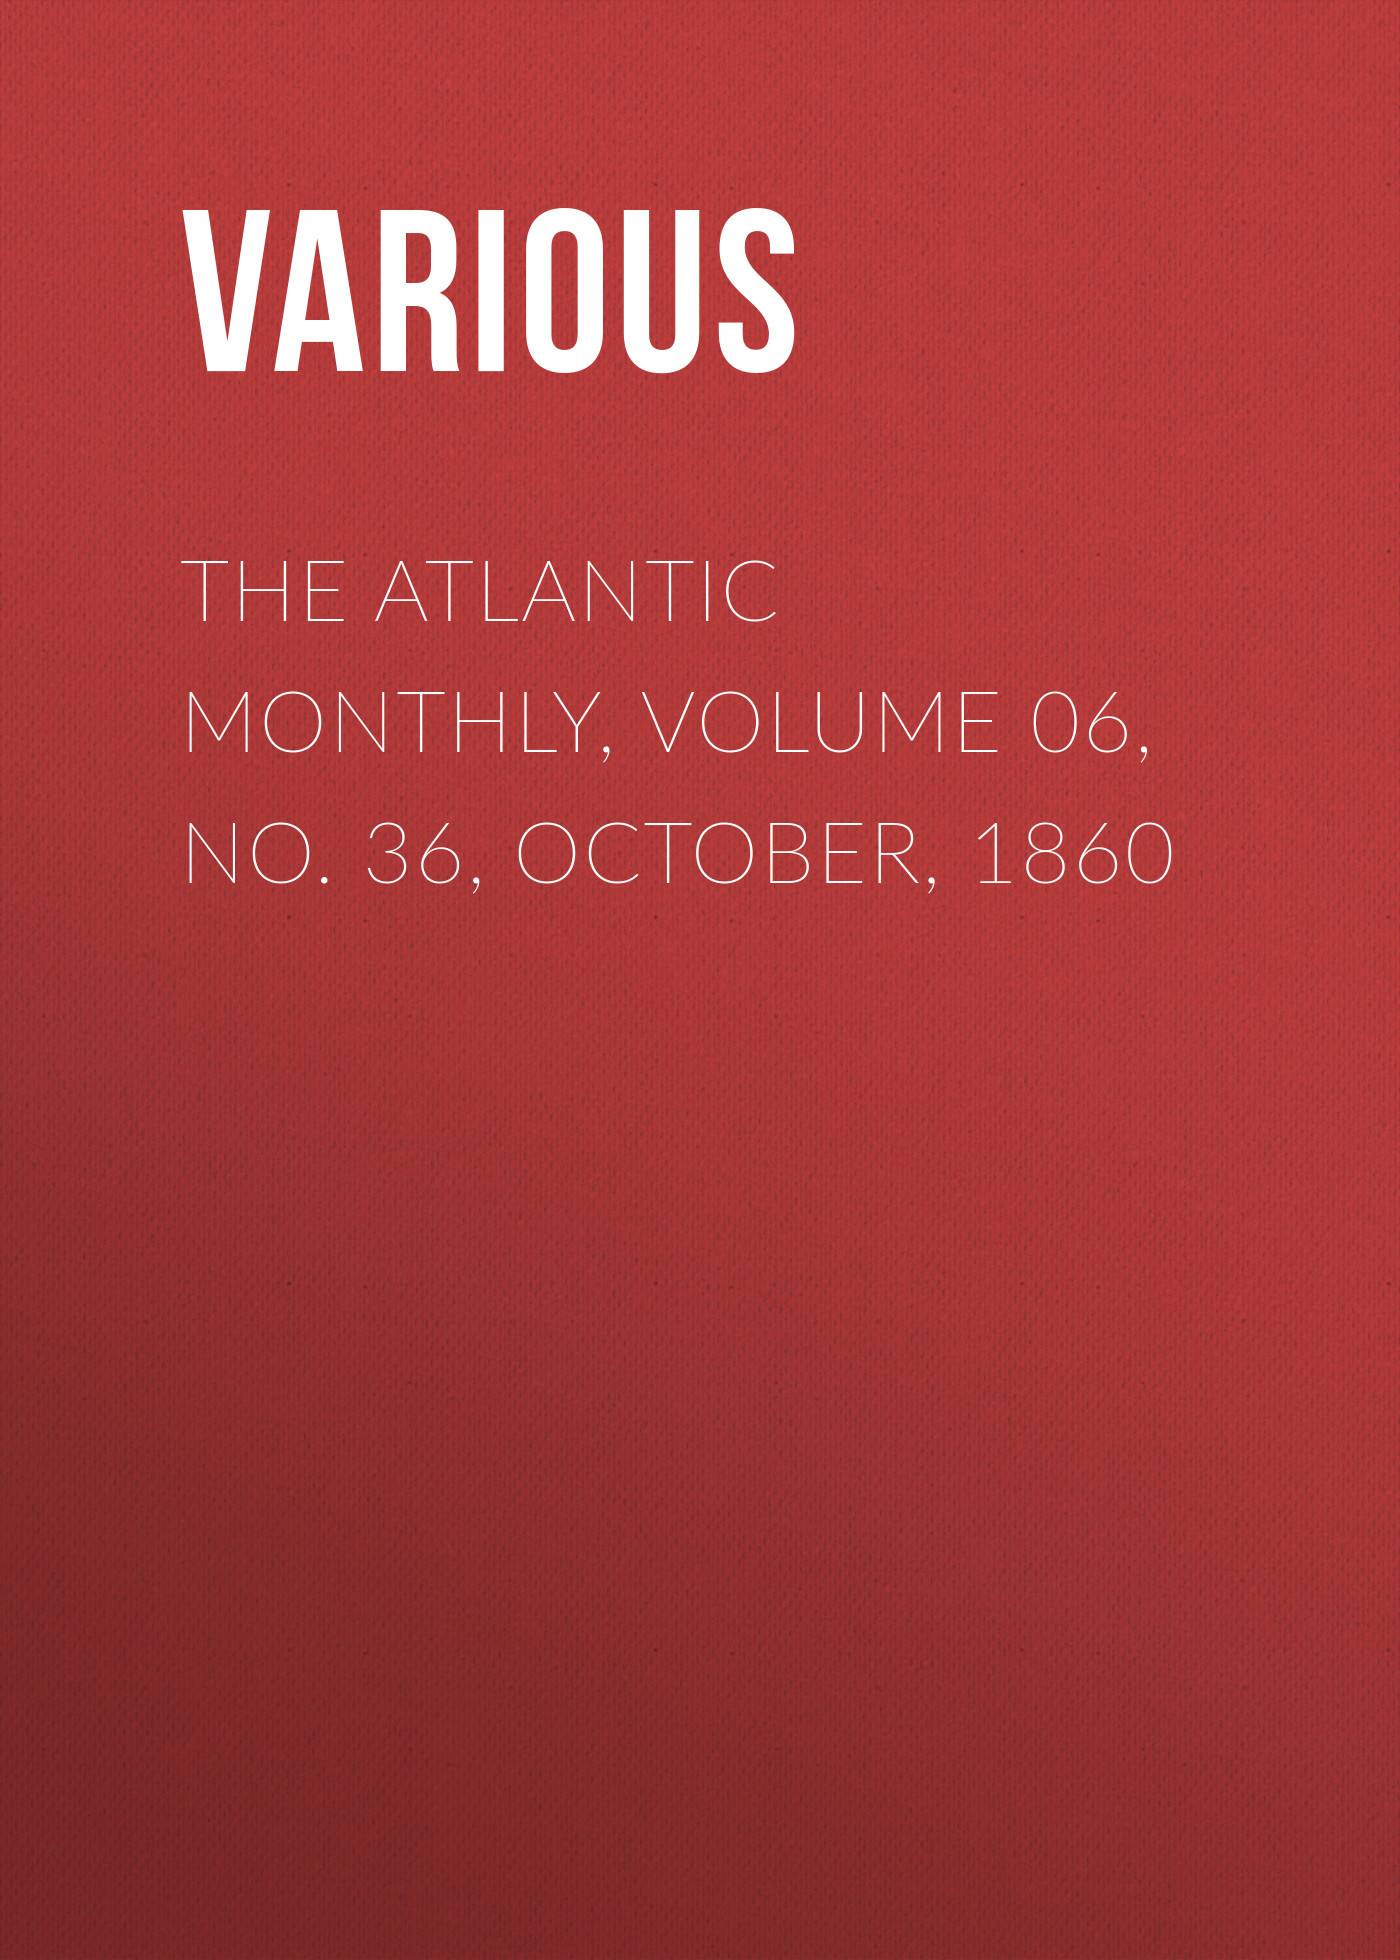 Various The Atlantic Monthly, Volume 06, No. 36, October, 1860 various armour s monthly cook book volume 2 no 12 october 1913